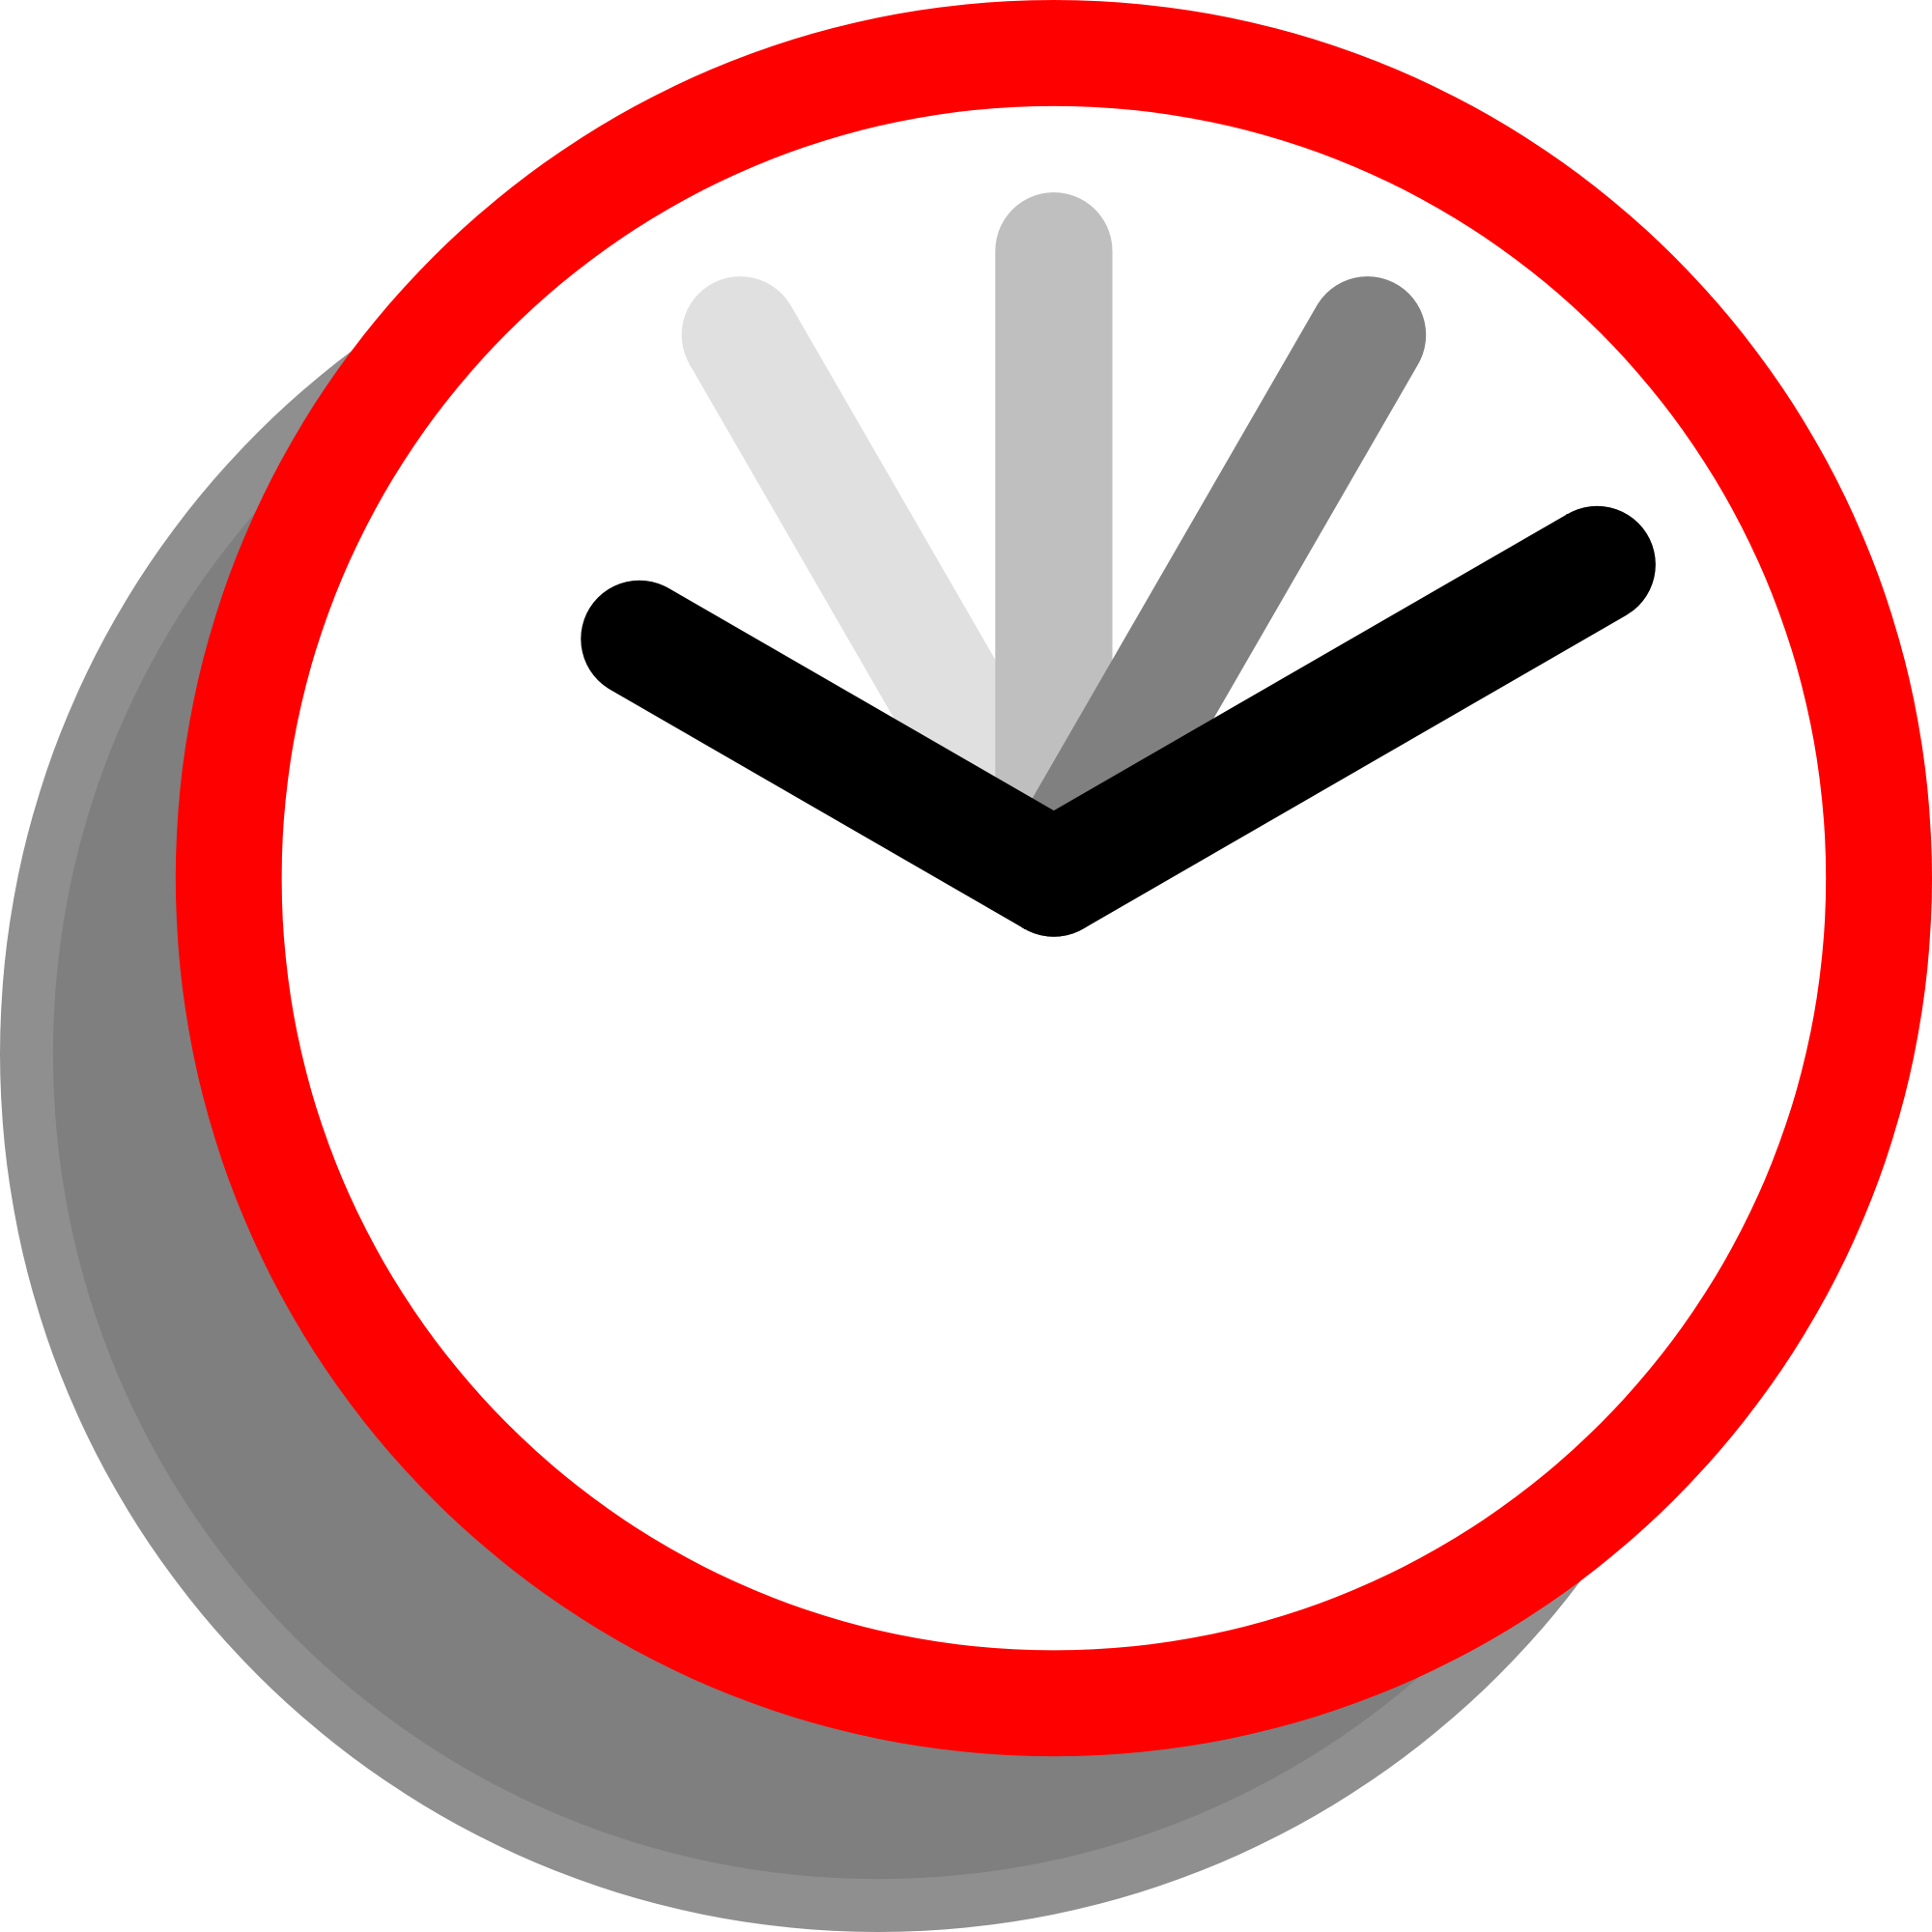 Transparent timer cartoon. File current event clock